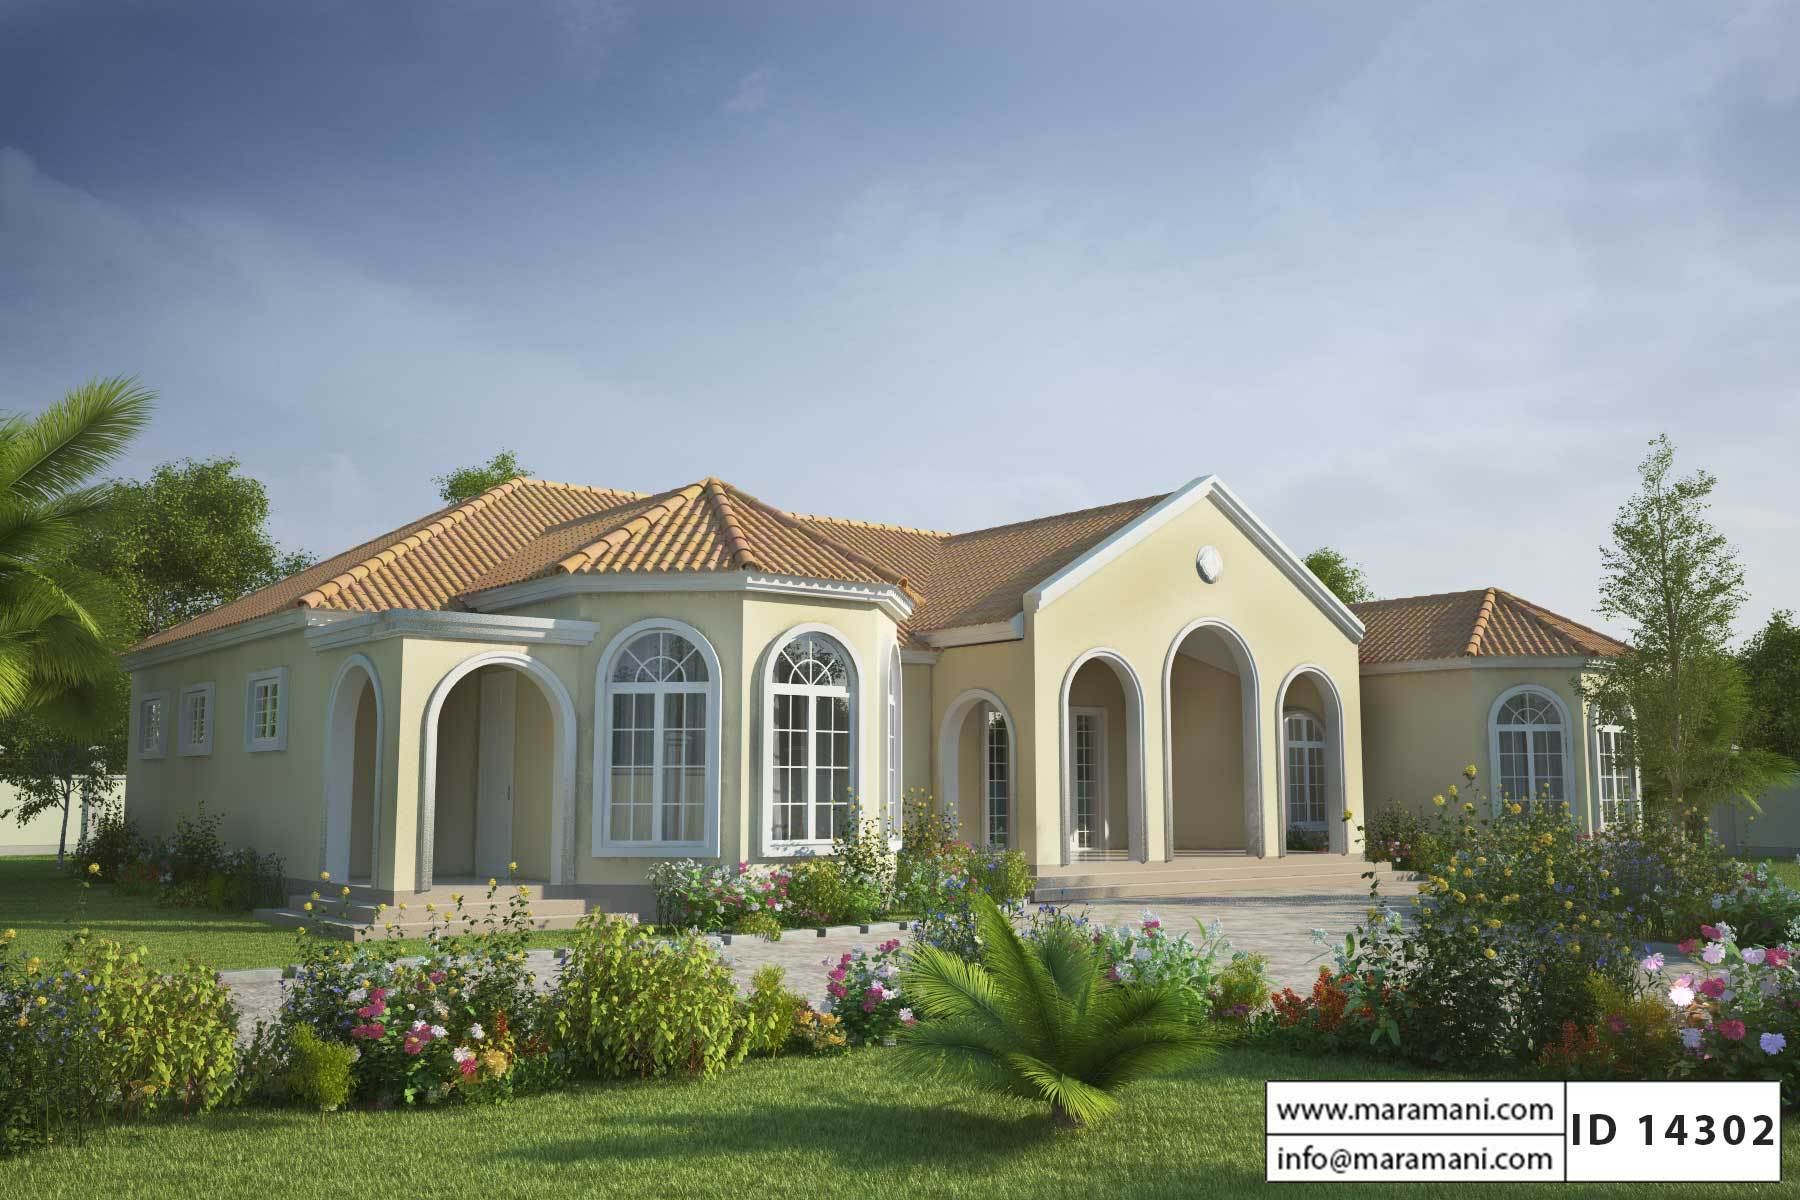 4 bedroom house plan id 14302 house plans by maramani 1 bedroom houses